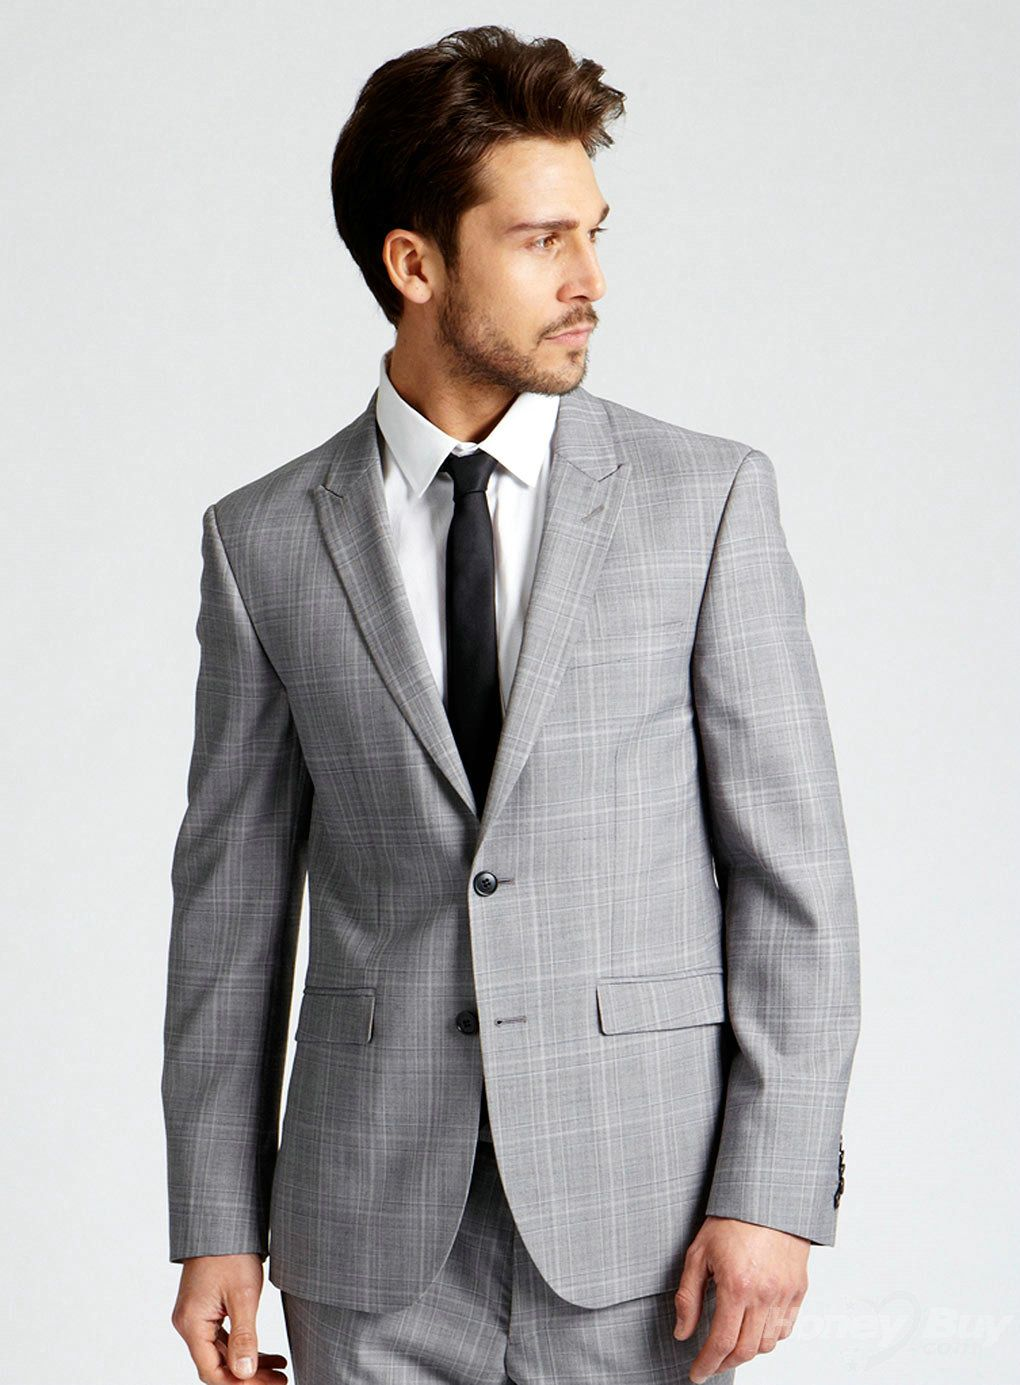 light grey suits wedding - Google Search | Wedding | Pinterest ...